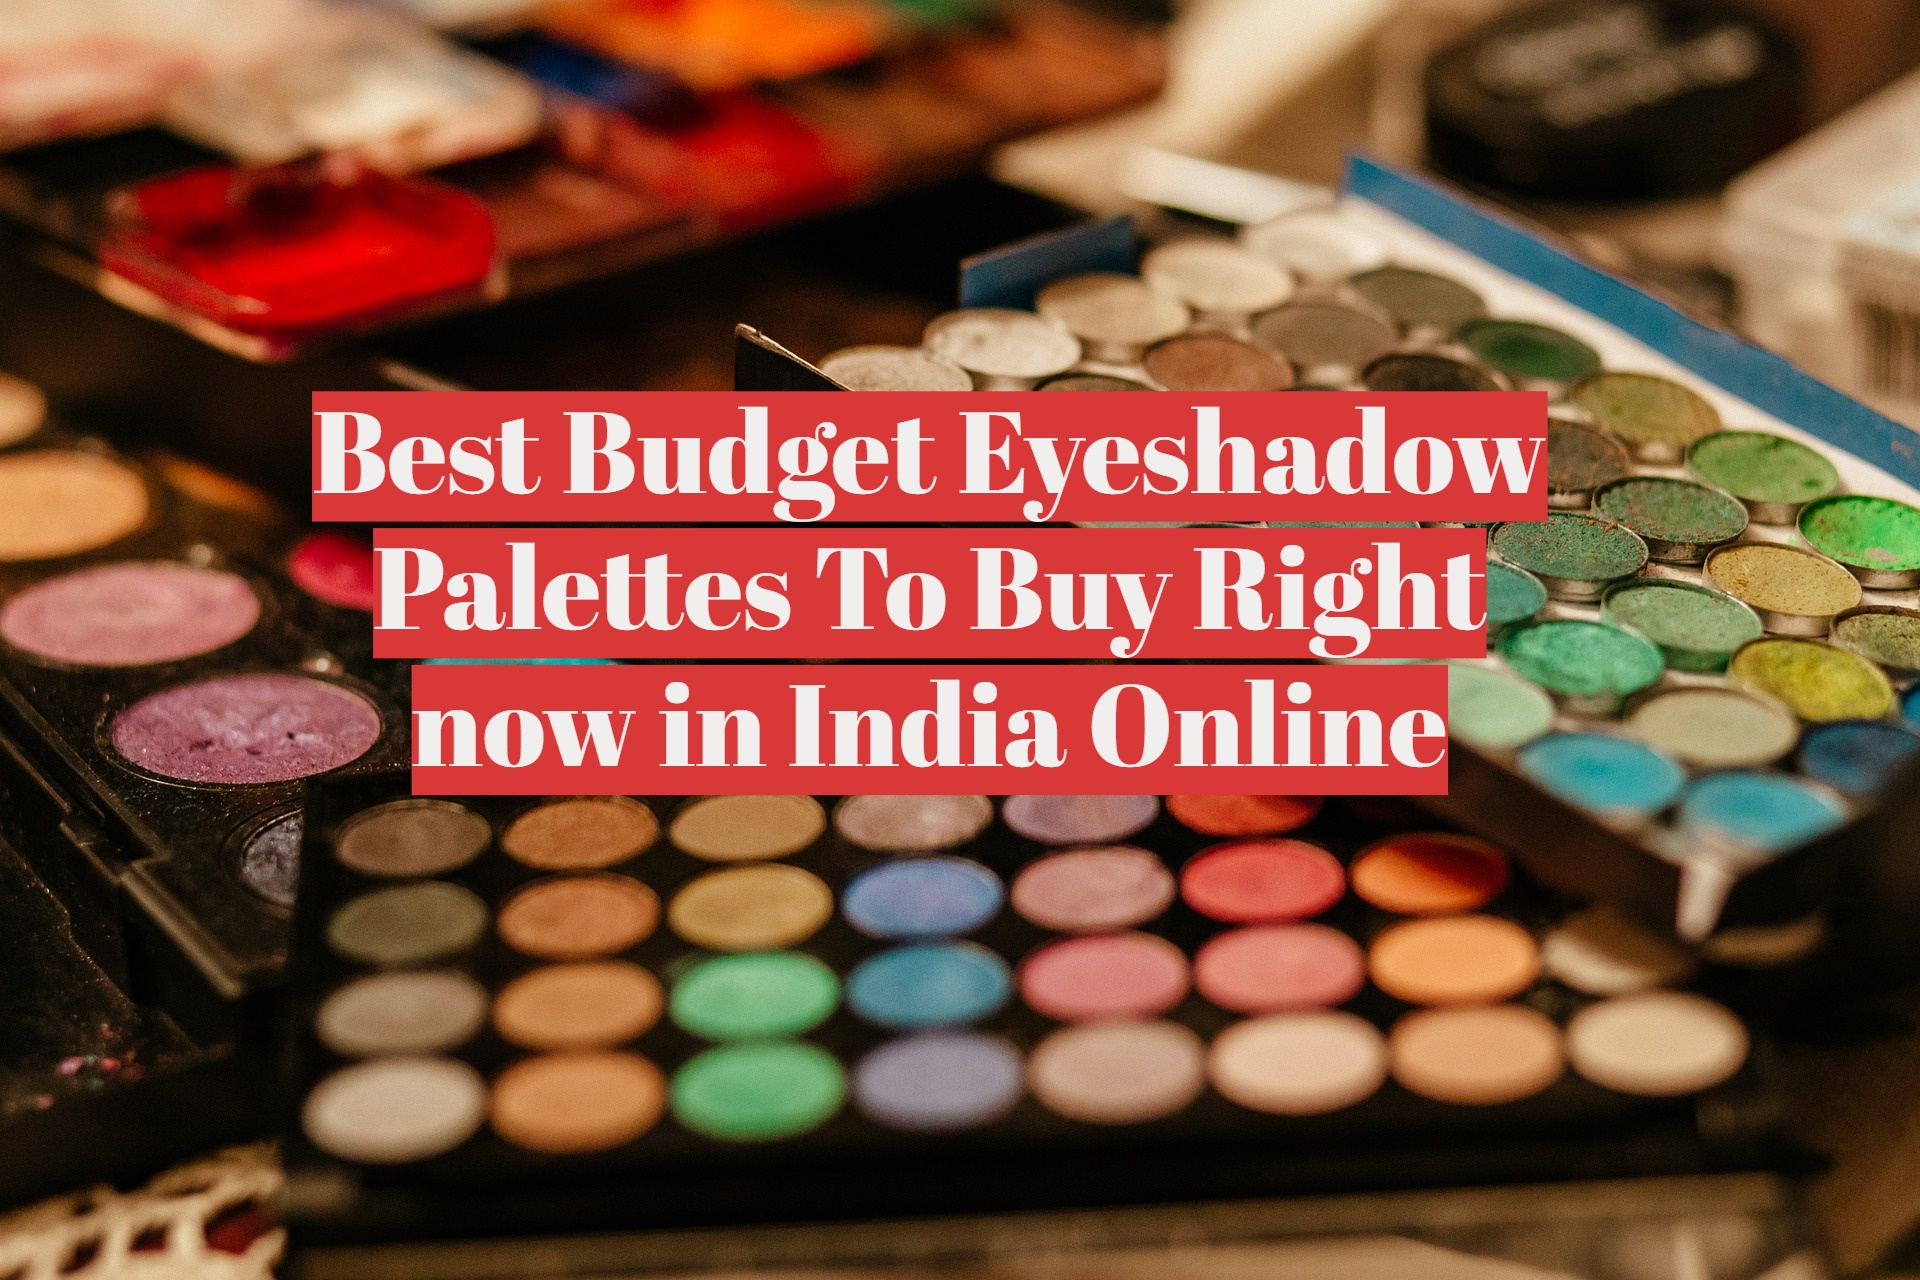 Budget eyeshadow palettes online india